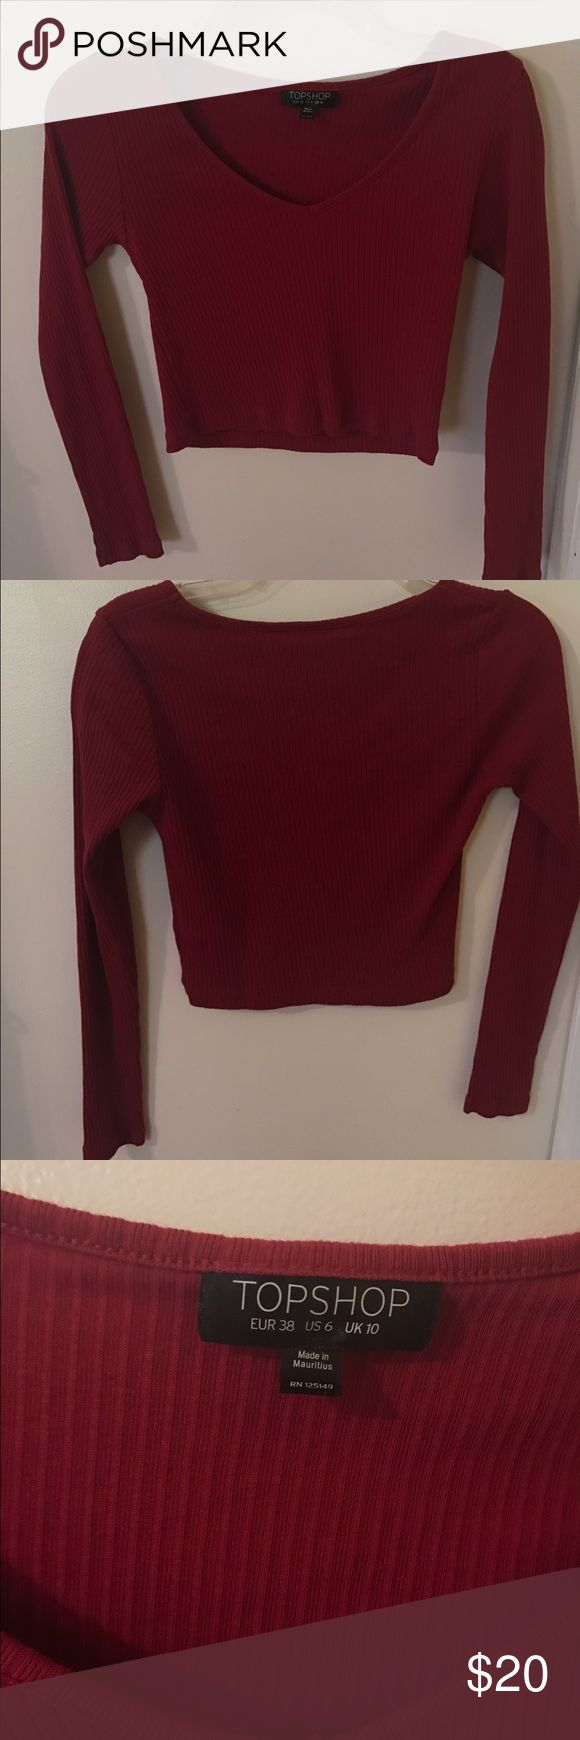 Burgundy long sleeves crop top ! This is a super cute burgundy ribbed long sleeve crop top. It's a size 6 and from Topshop. It's just something that I never really reached for in my closet but it's super super comfortable and true to size. Topshop Tops Crop Tops